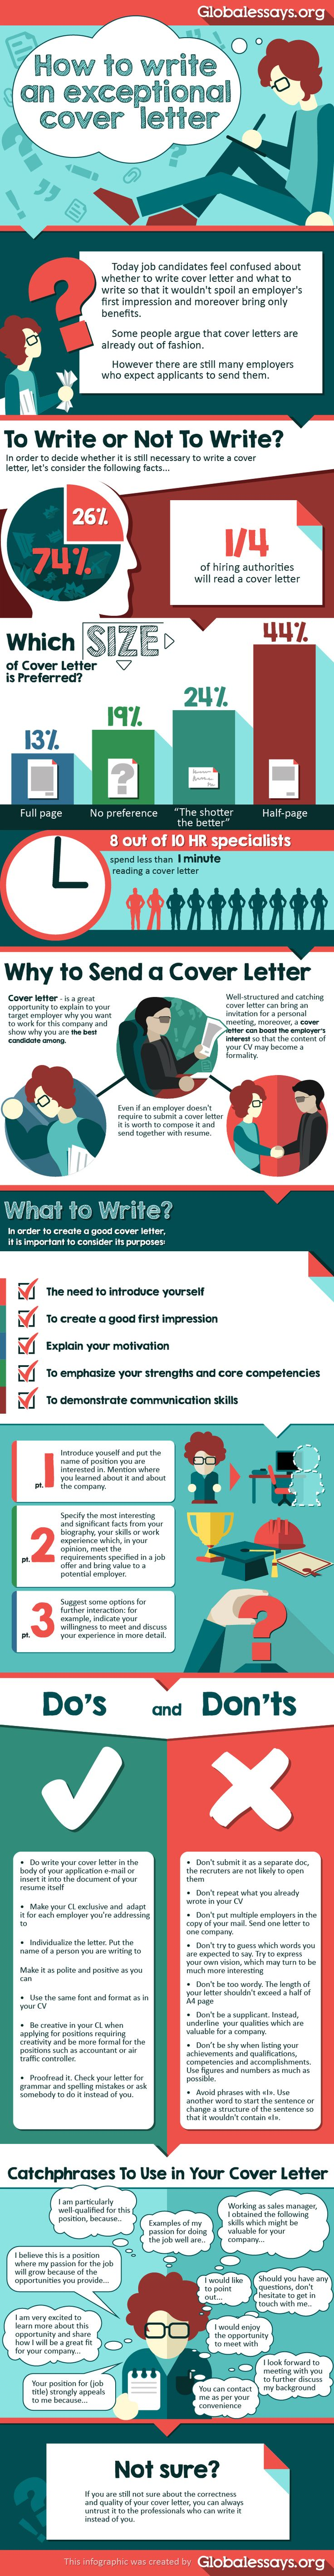 How to Write an Exceptional Cover Letter  [by Global Essays -- via #tipsographic]. More at tipsographic.com